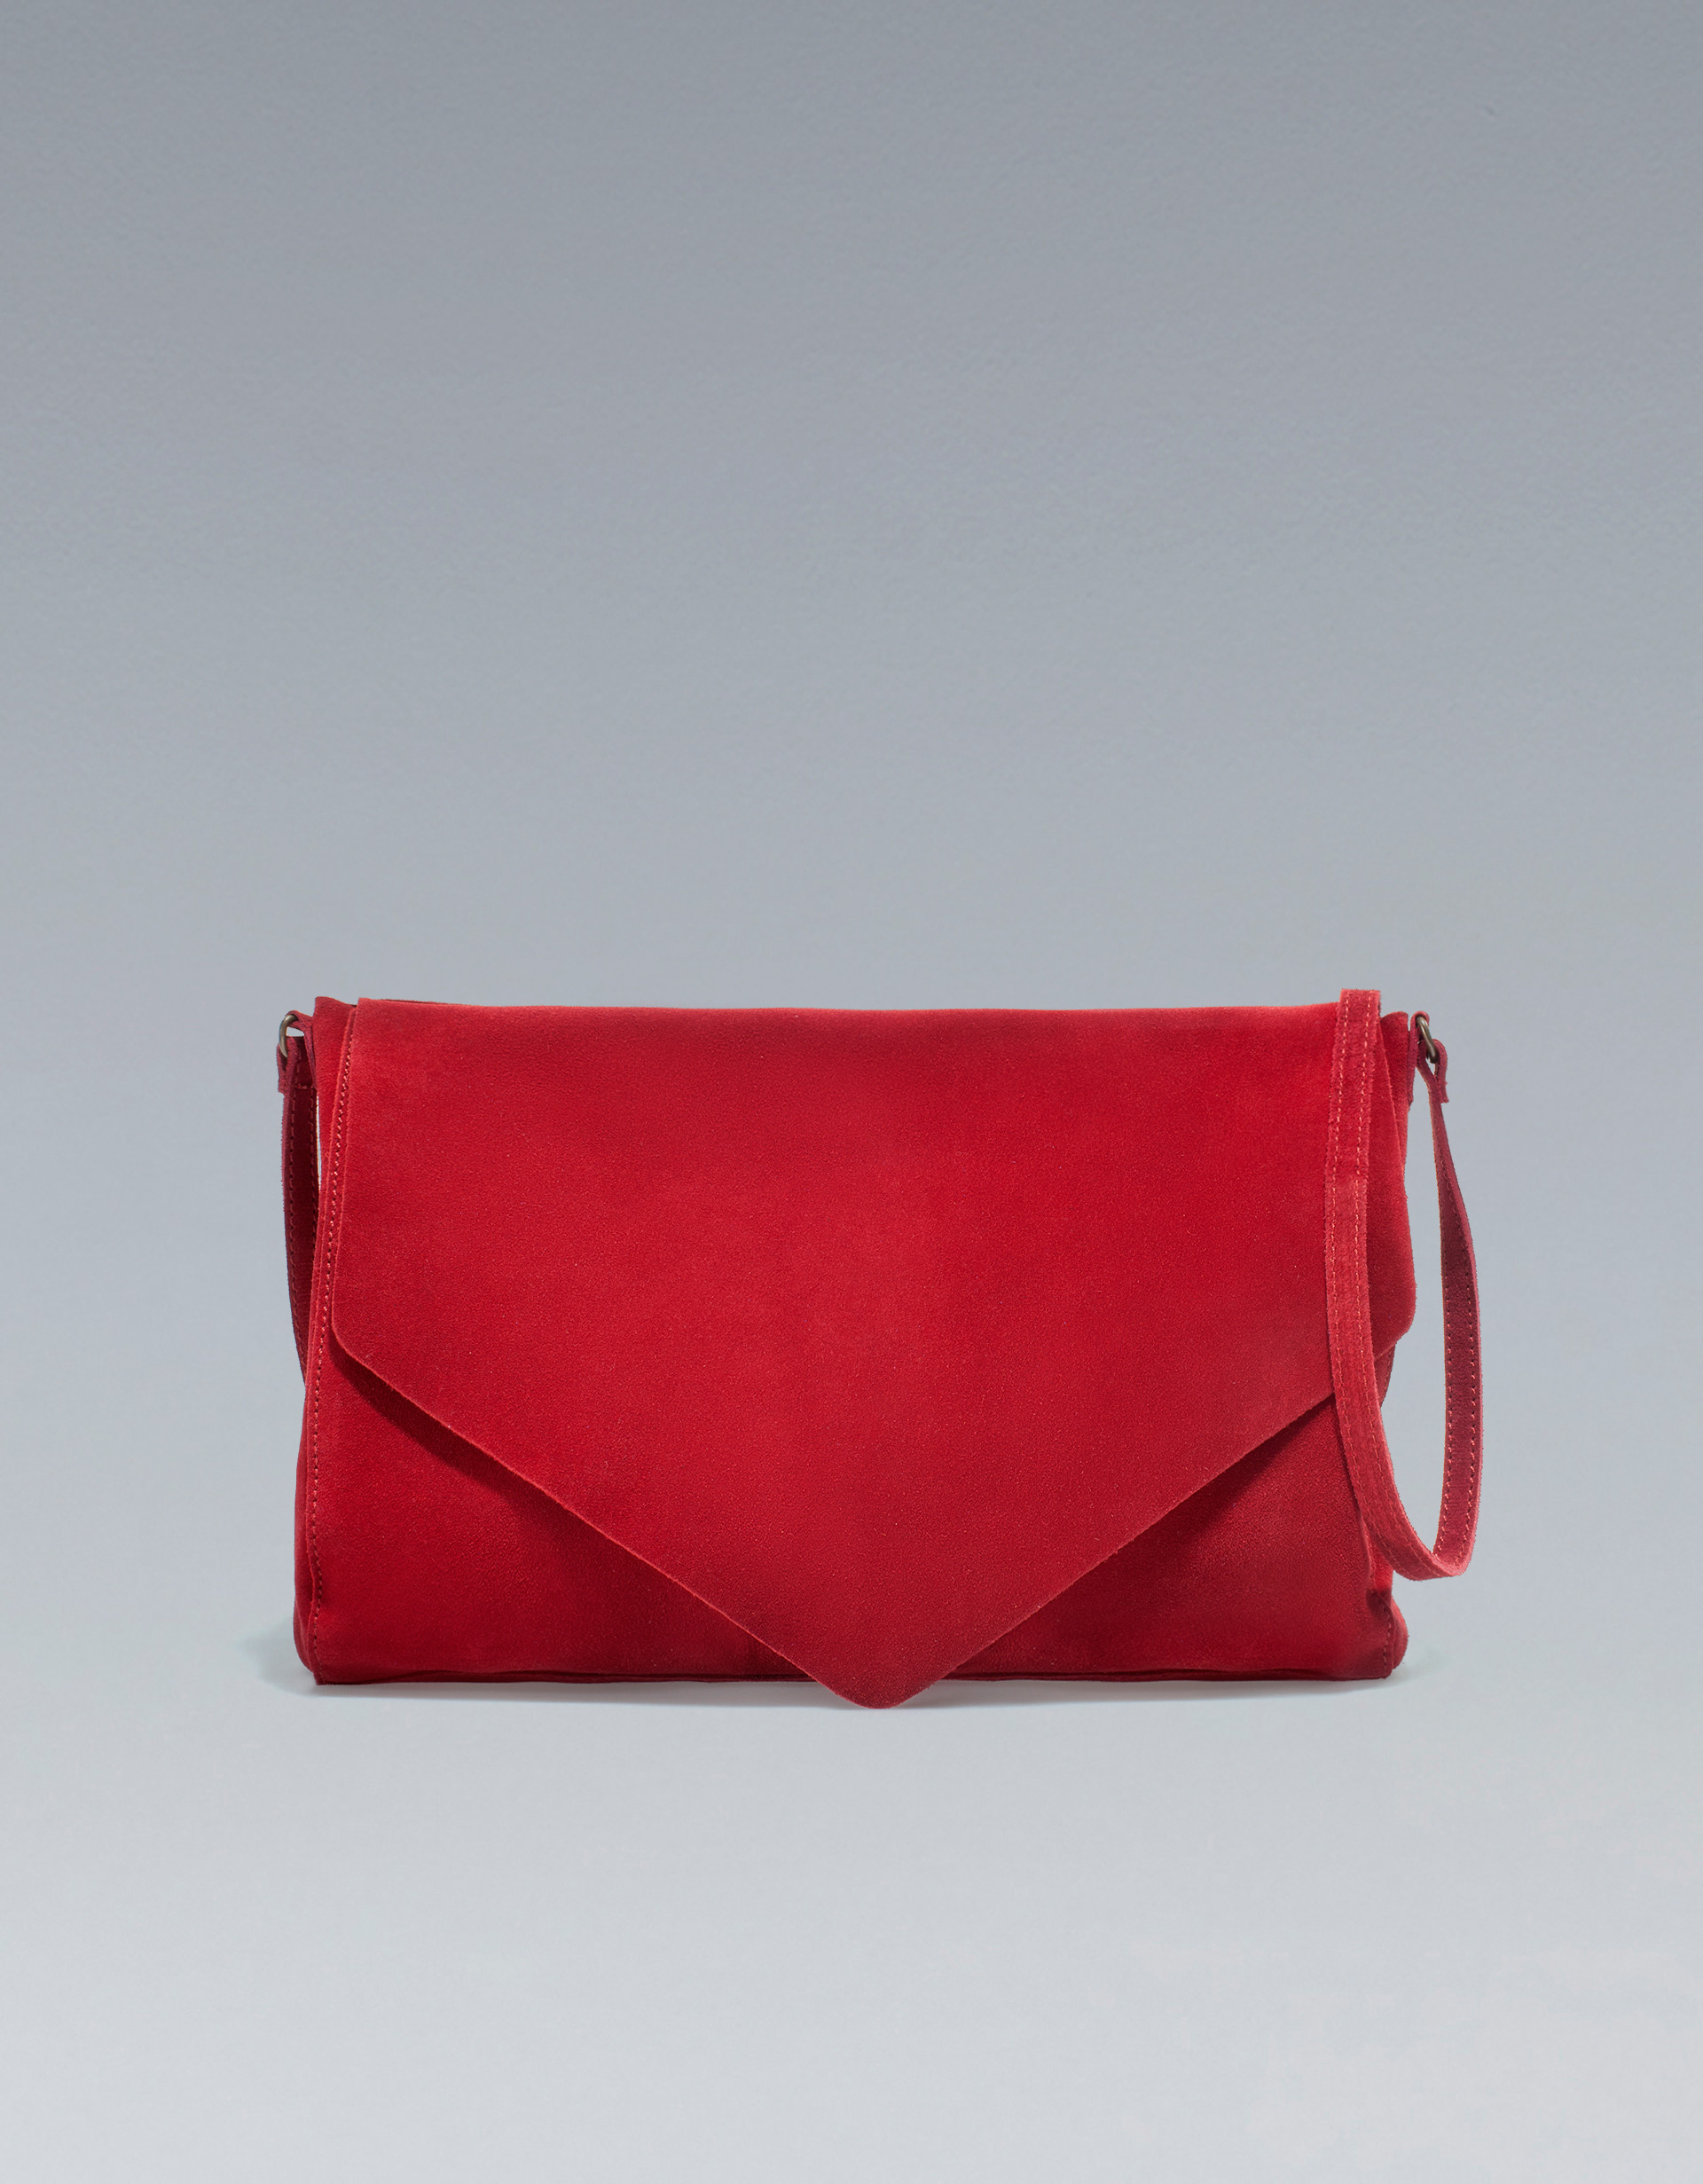 Zara Suede Messenger Bag in Red | Lyst